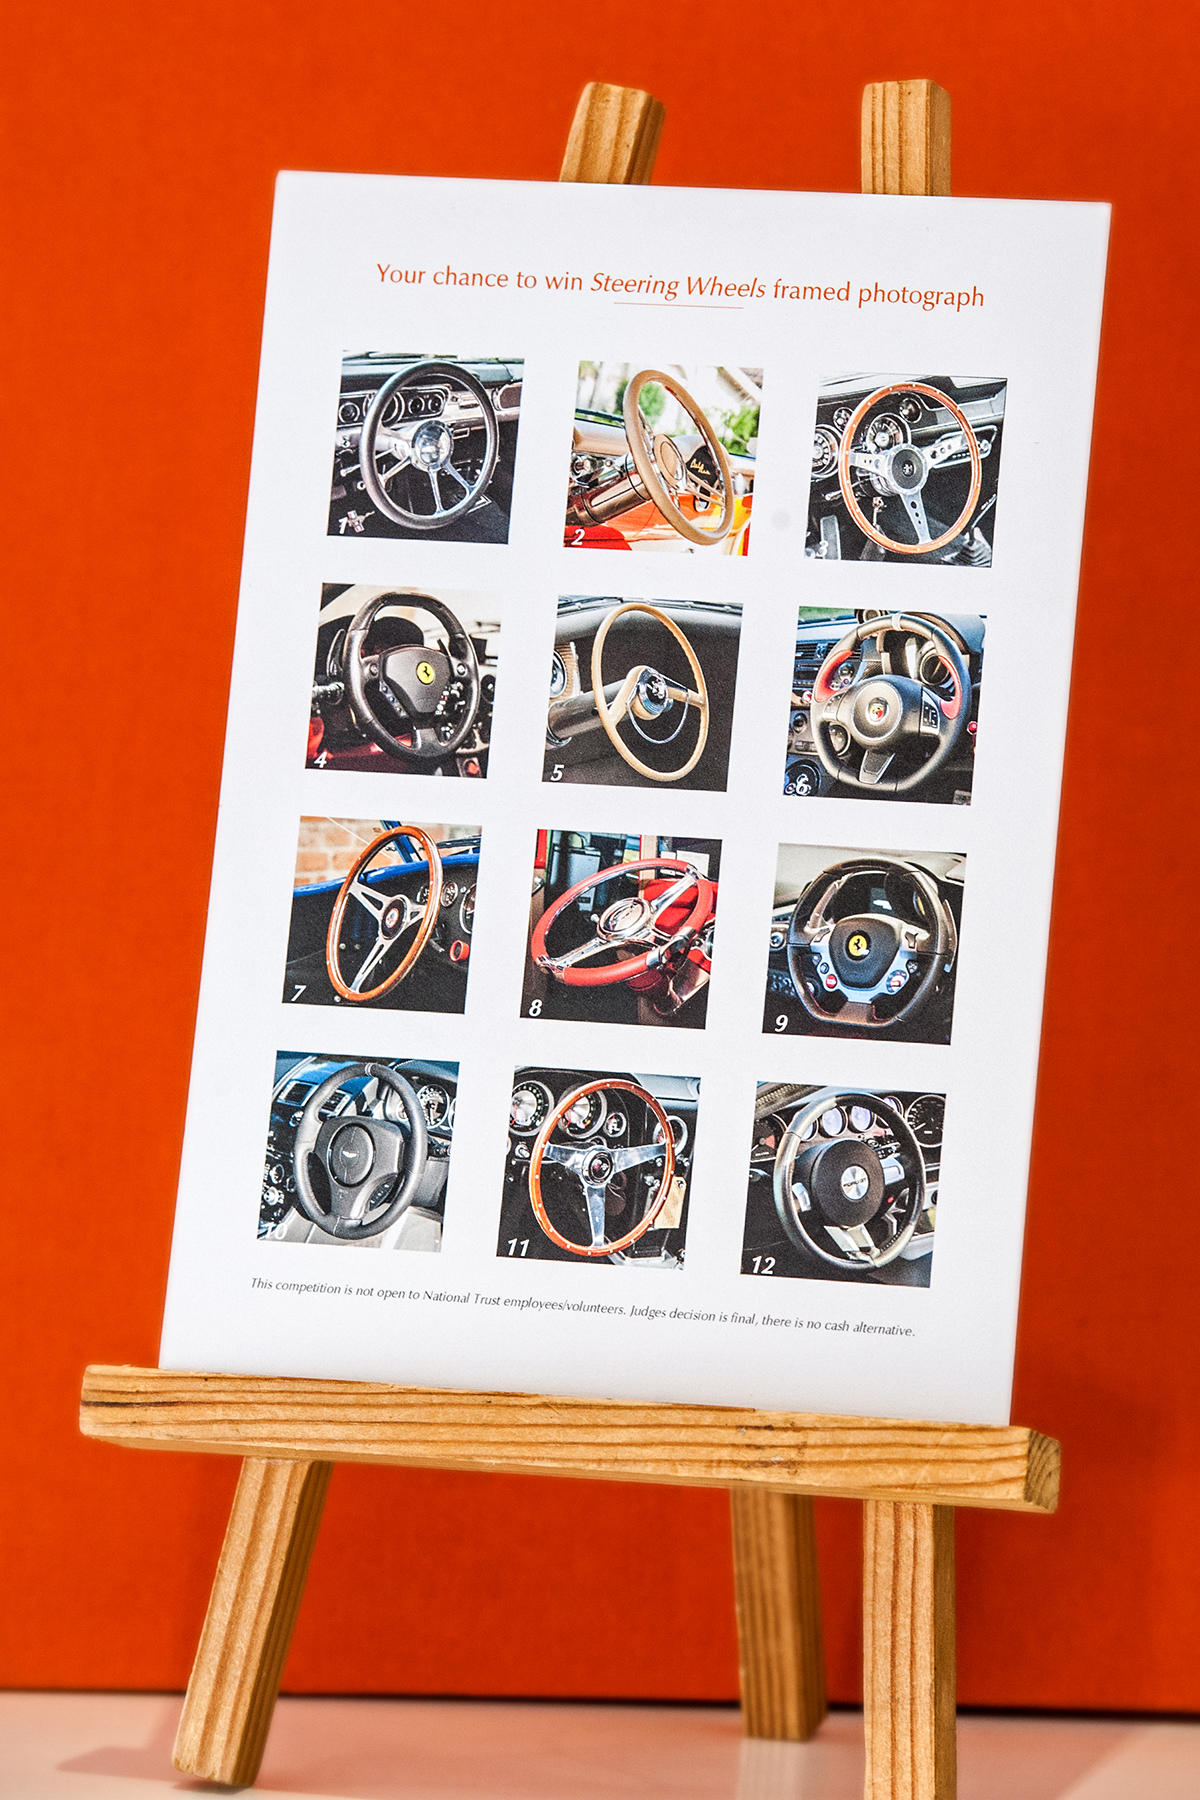 - At each event that exhibits; 'A Drive DownMemory Lane', there is an opportunity to enterthe competition to win the framed limited edition photograph titled 'Steering Wheels'.By naming which car, make, model and year eachof the twelve steering wheels belongs to.  An entry card provided at all future exhibitionswill enable you to take part too.